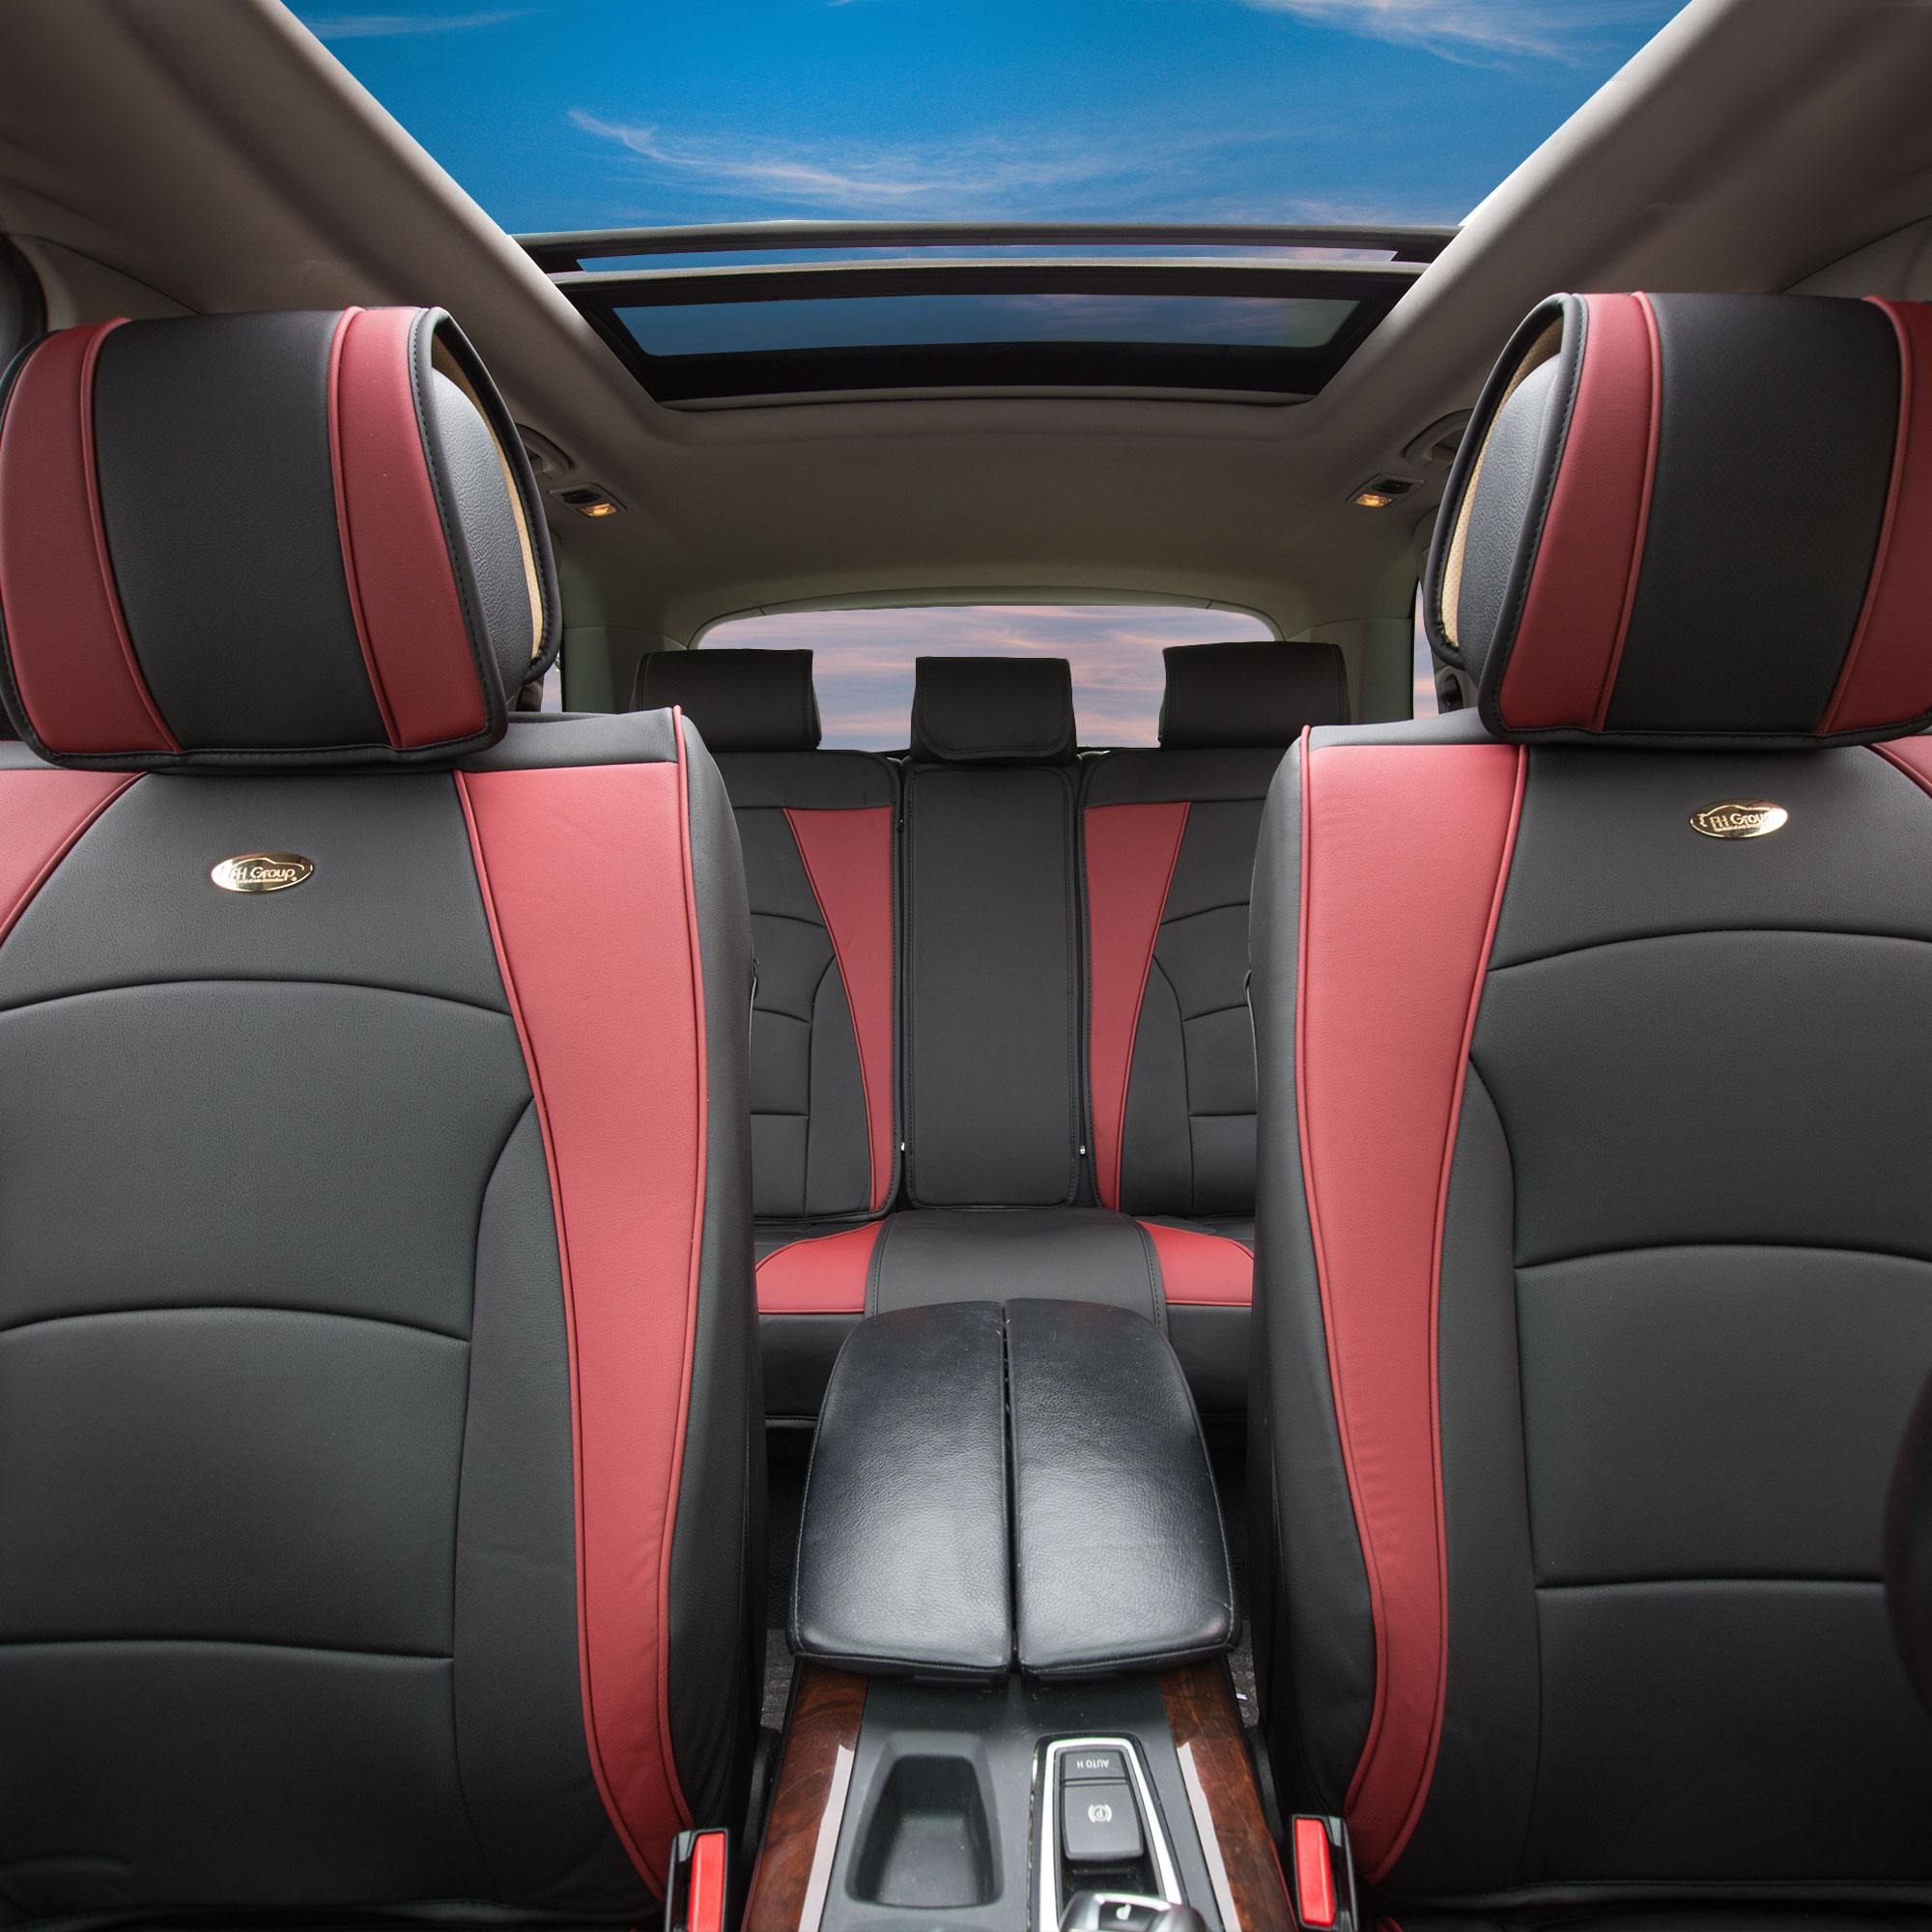 5 seat car suv pu leather seat cushion covers full set 5 colors with dash mat ebay. Black Bedroom Furniture Sets. Home Design Ideas